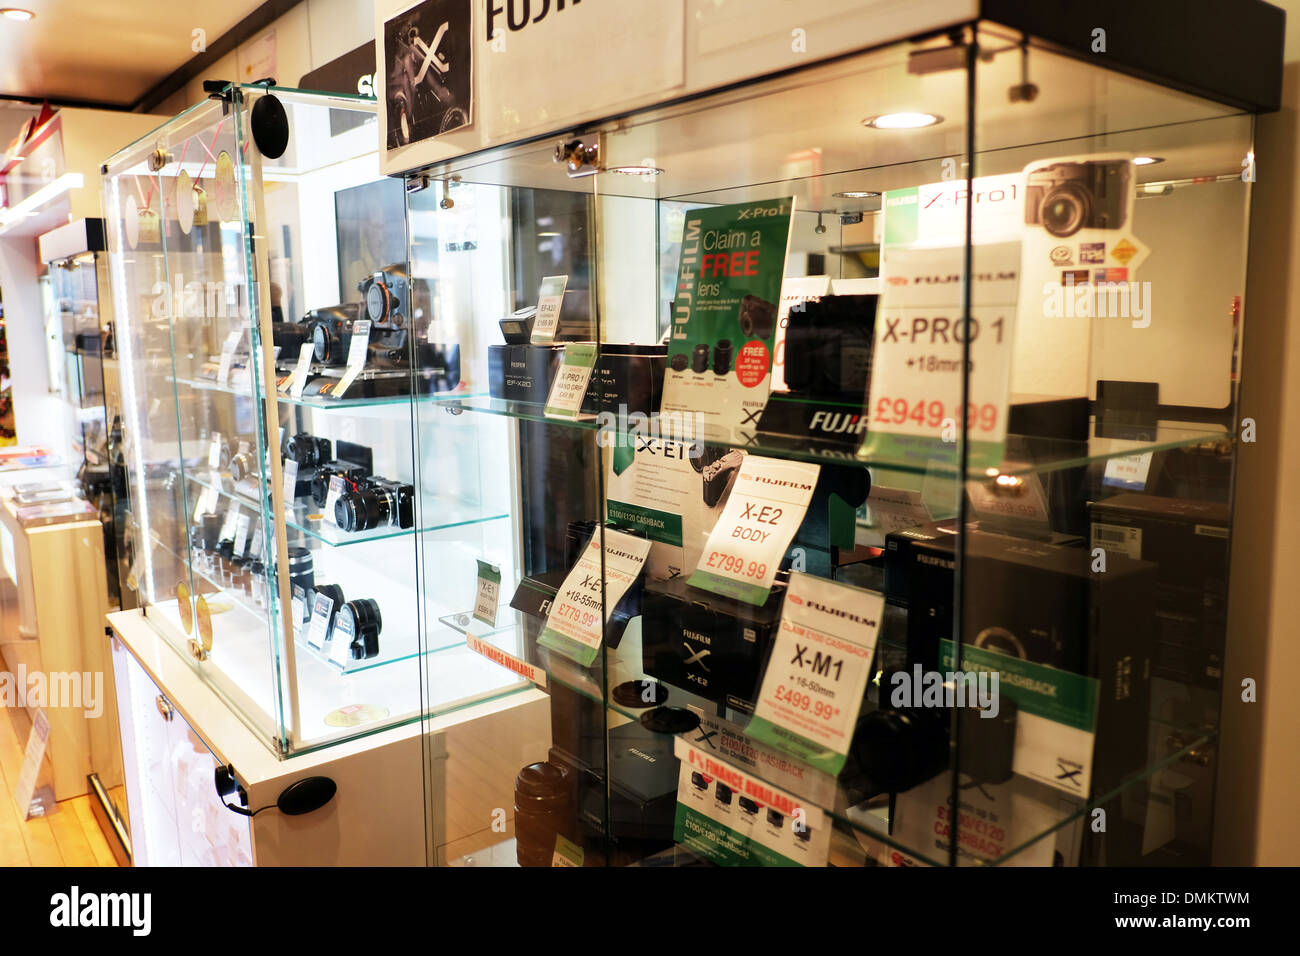 Fuji x-pro 1 camera display cabinet in shop new cameras for sale in glass case cabinet lens lenses displayed - Stock Image